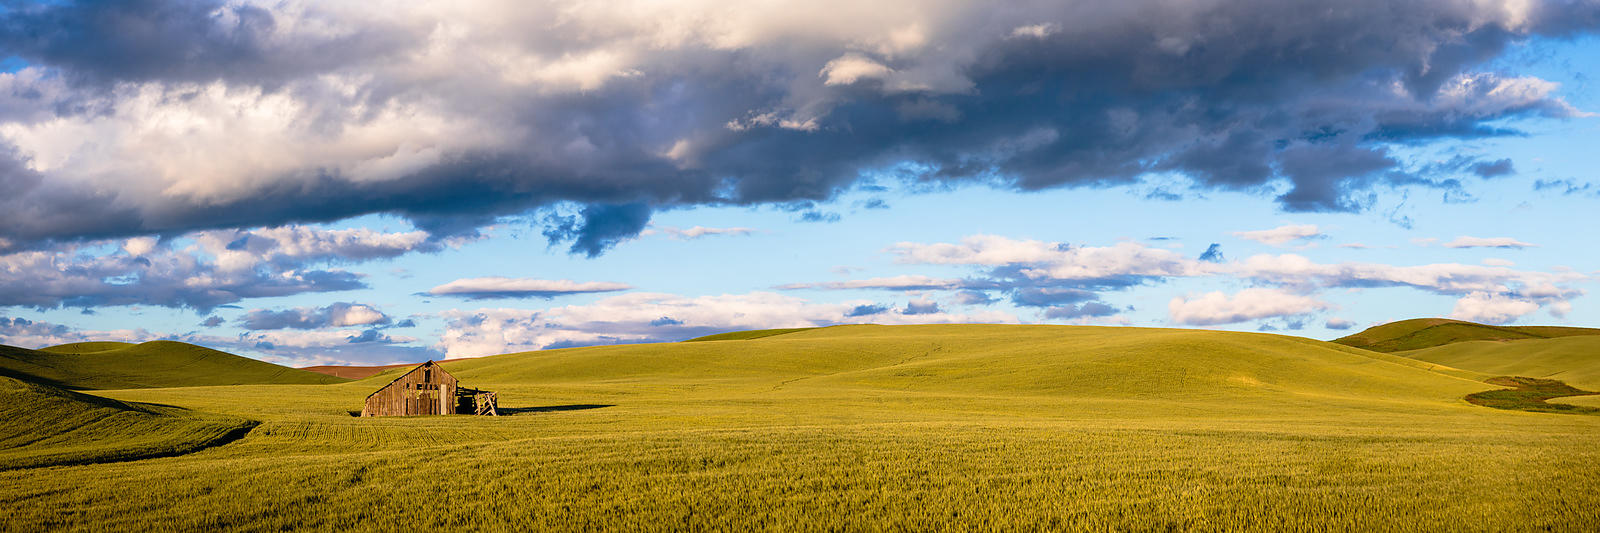 Owen_Roth_Photography-June_18_2016-Palouse_County-1514-Pano-00028